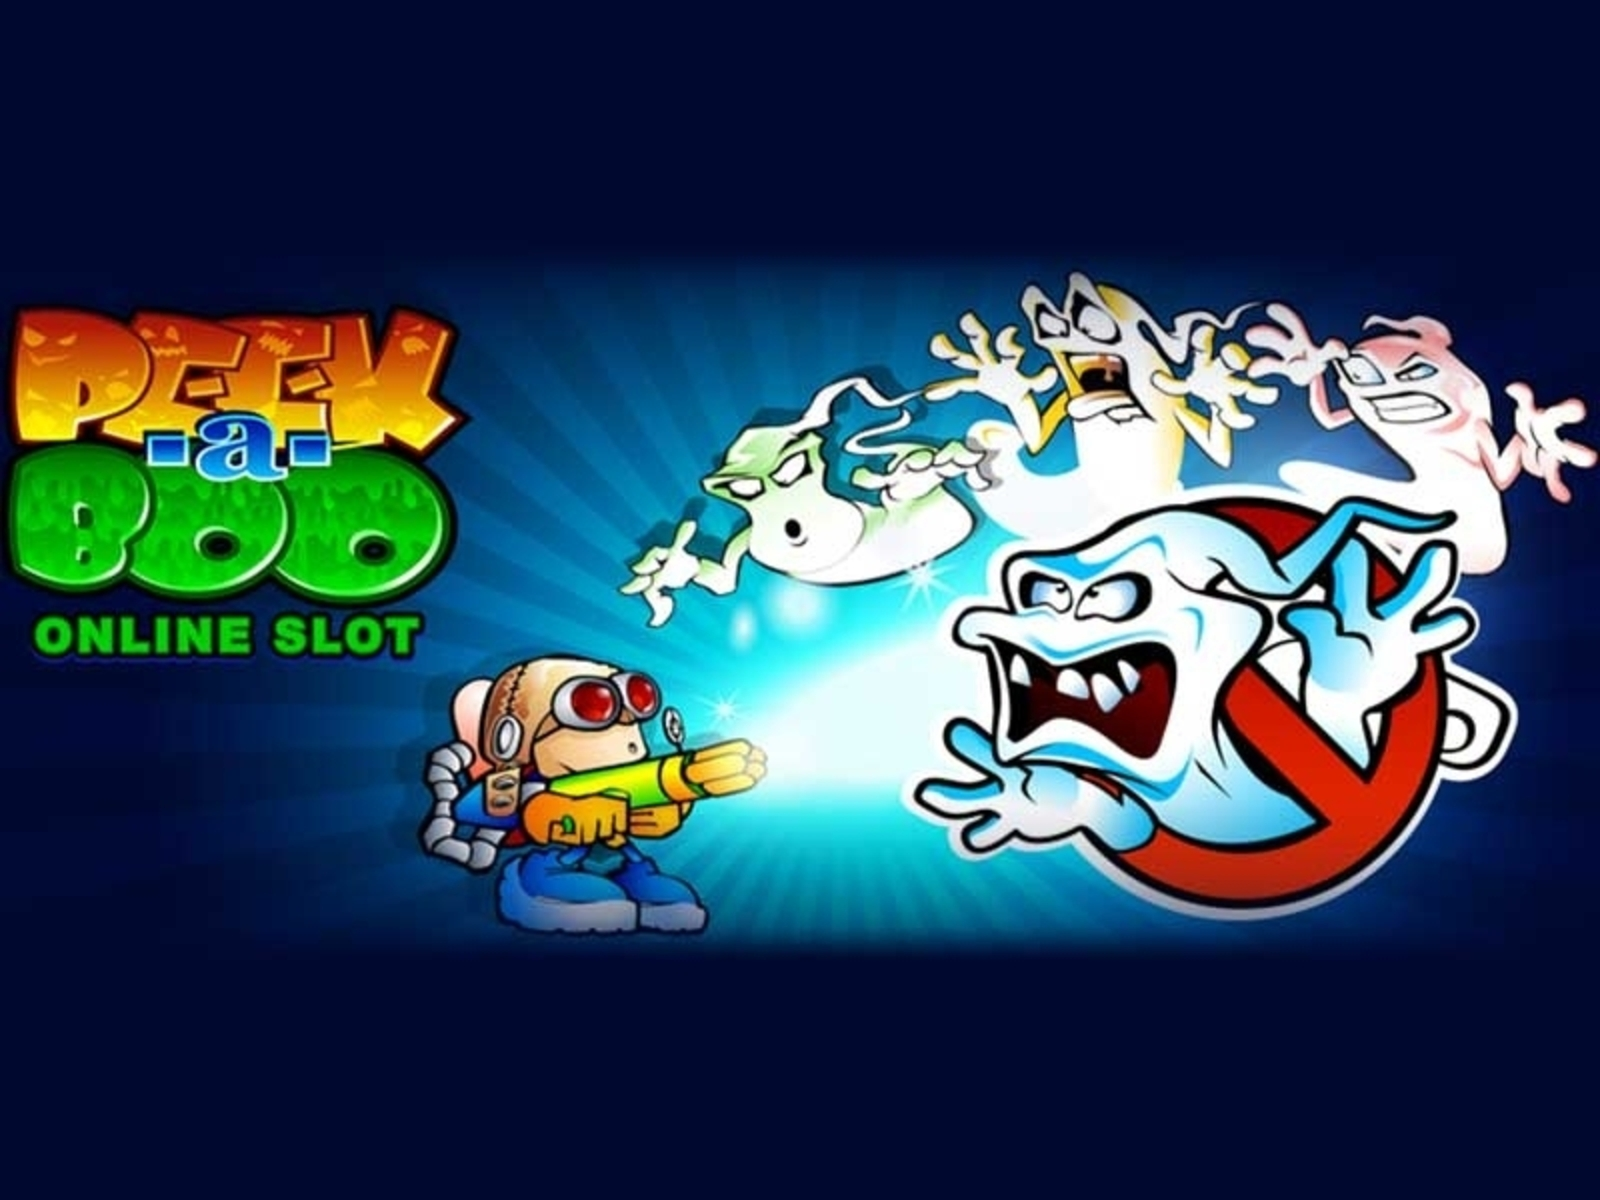 Peek-a-Boo Online Slot Demo Game by Microgaming